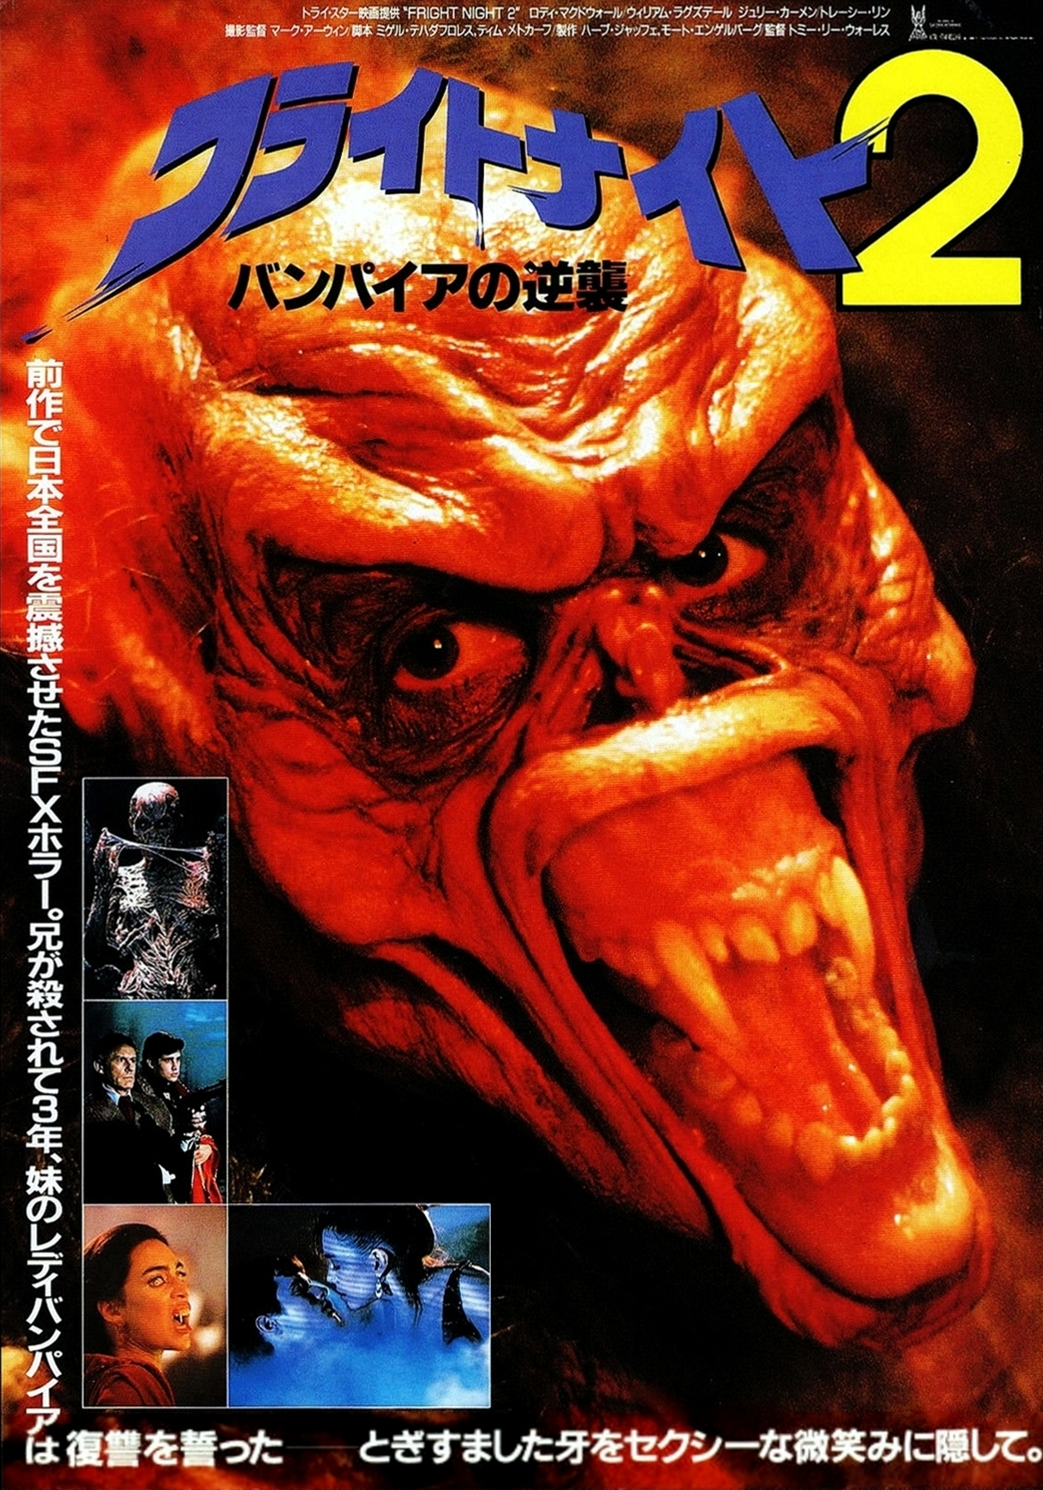 Fright Night Part II Japanese poster